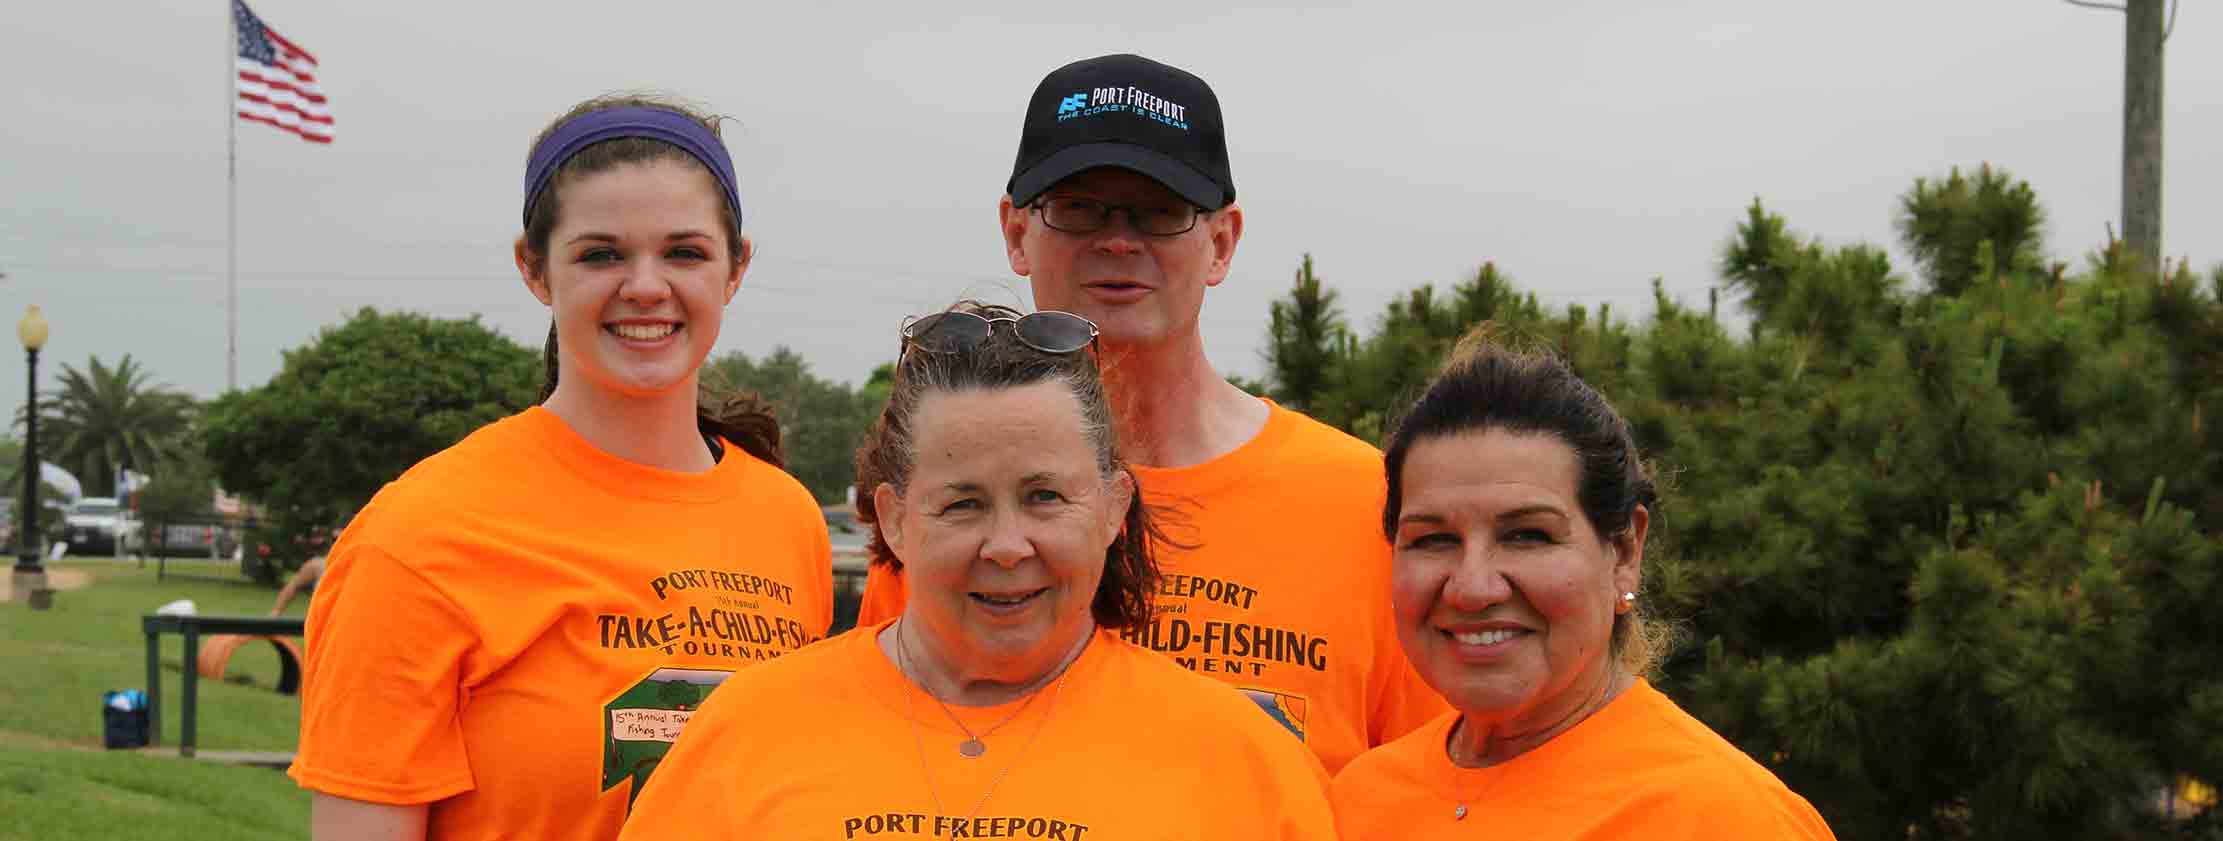 port freeport child fishing tournament